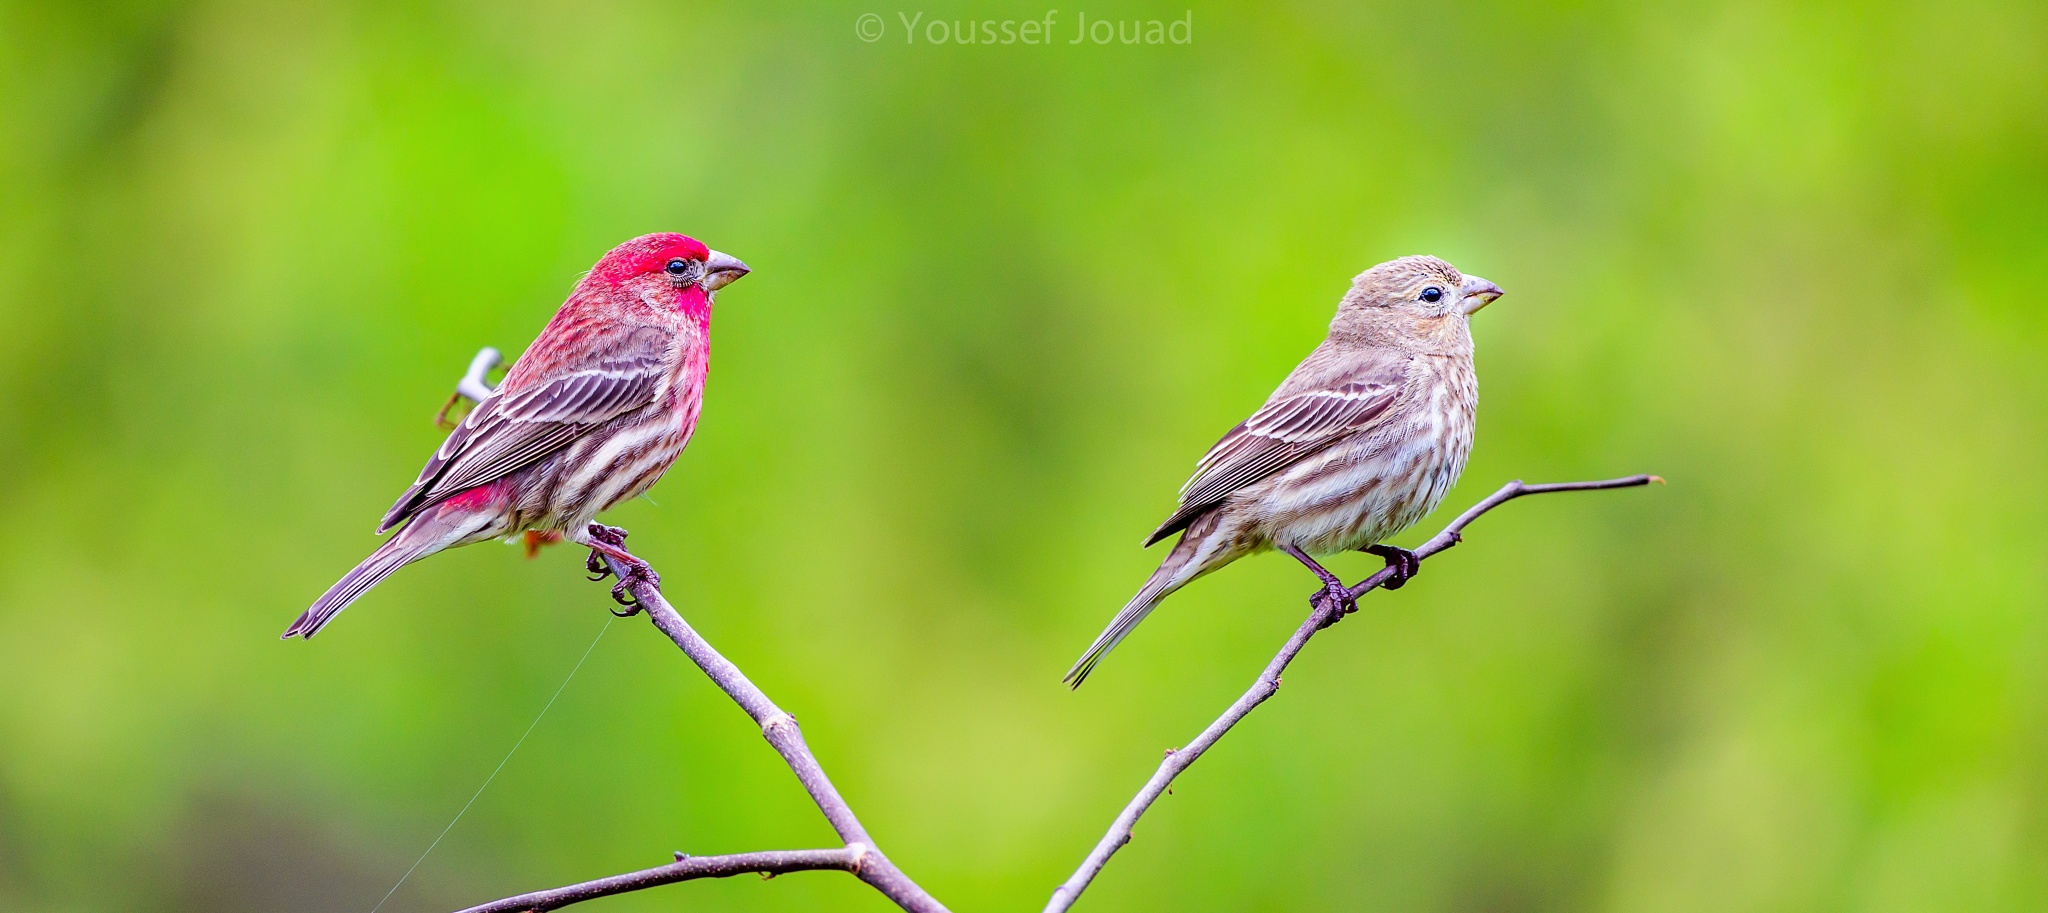 Beautiful couple birds by Youssef Jouad